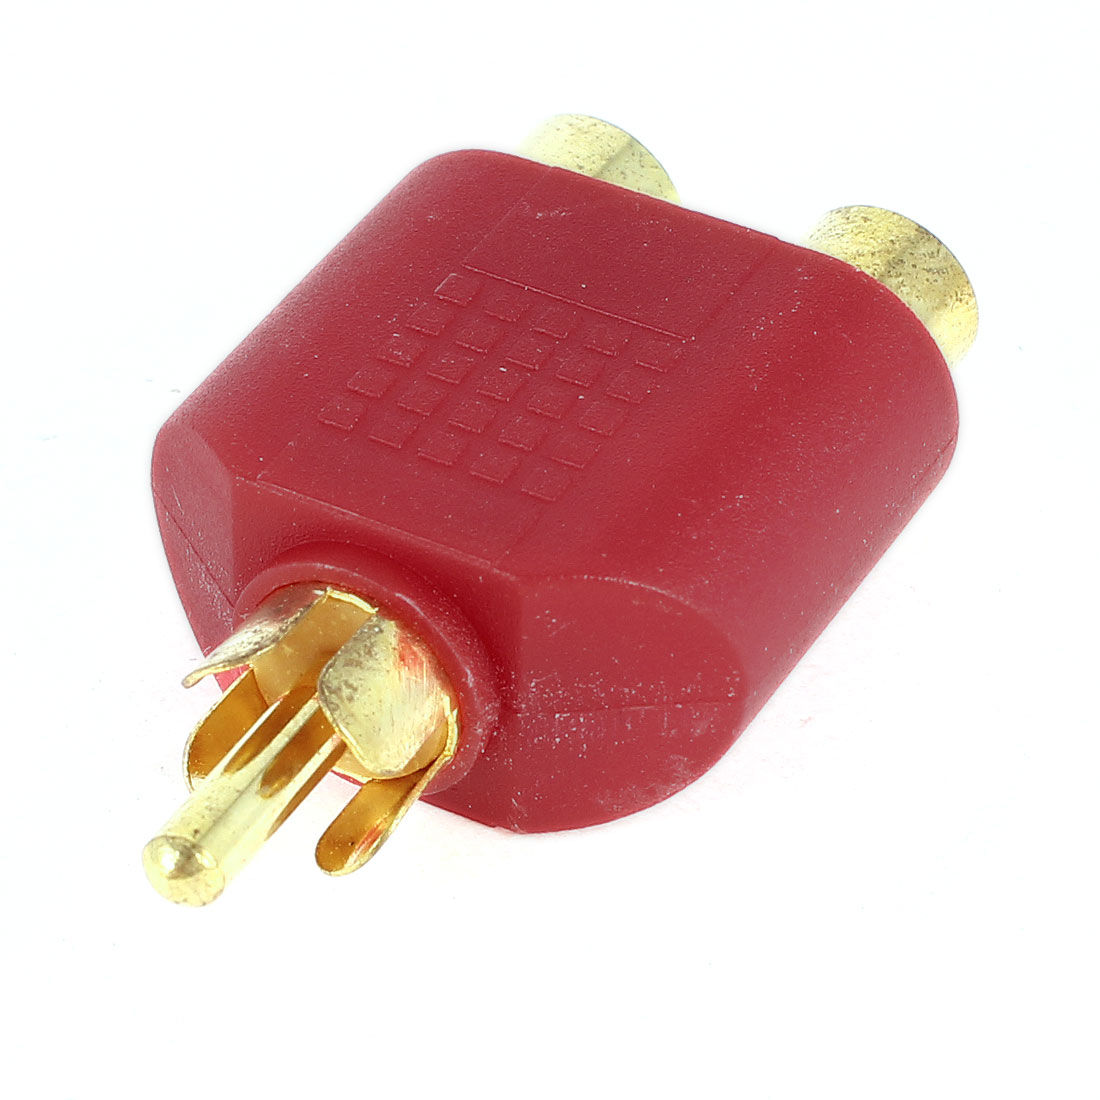 RCA Male Connector to Dual RCA Female Jacks Audio Adapter Y Splitter Converter